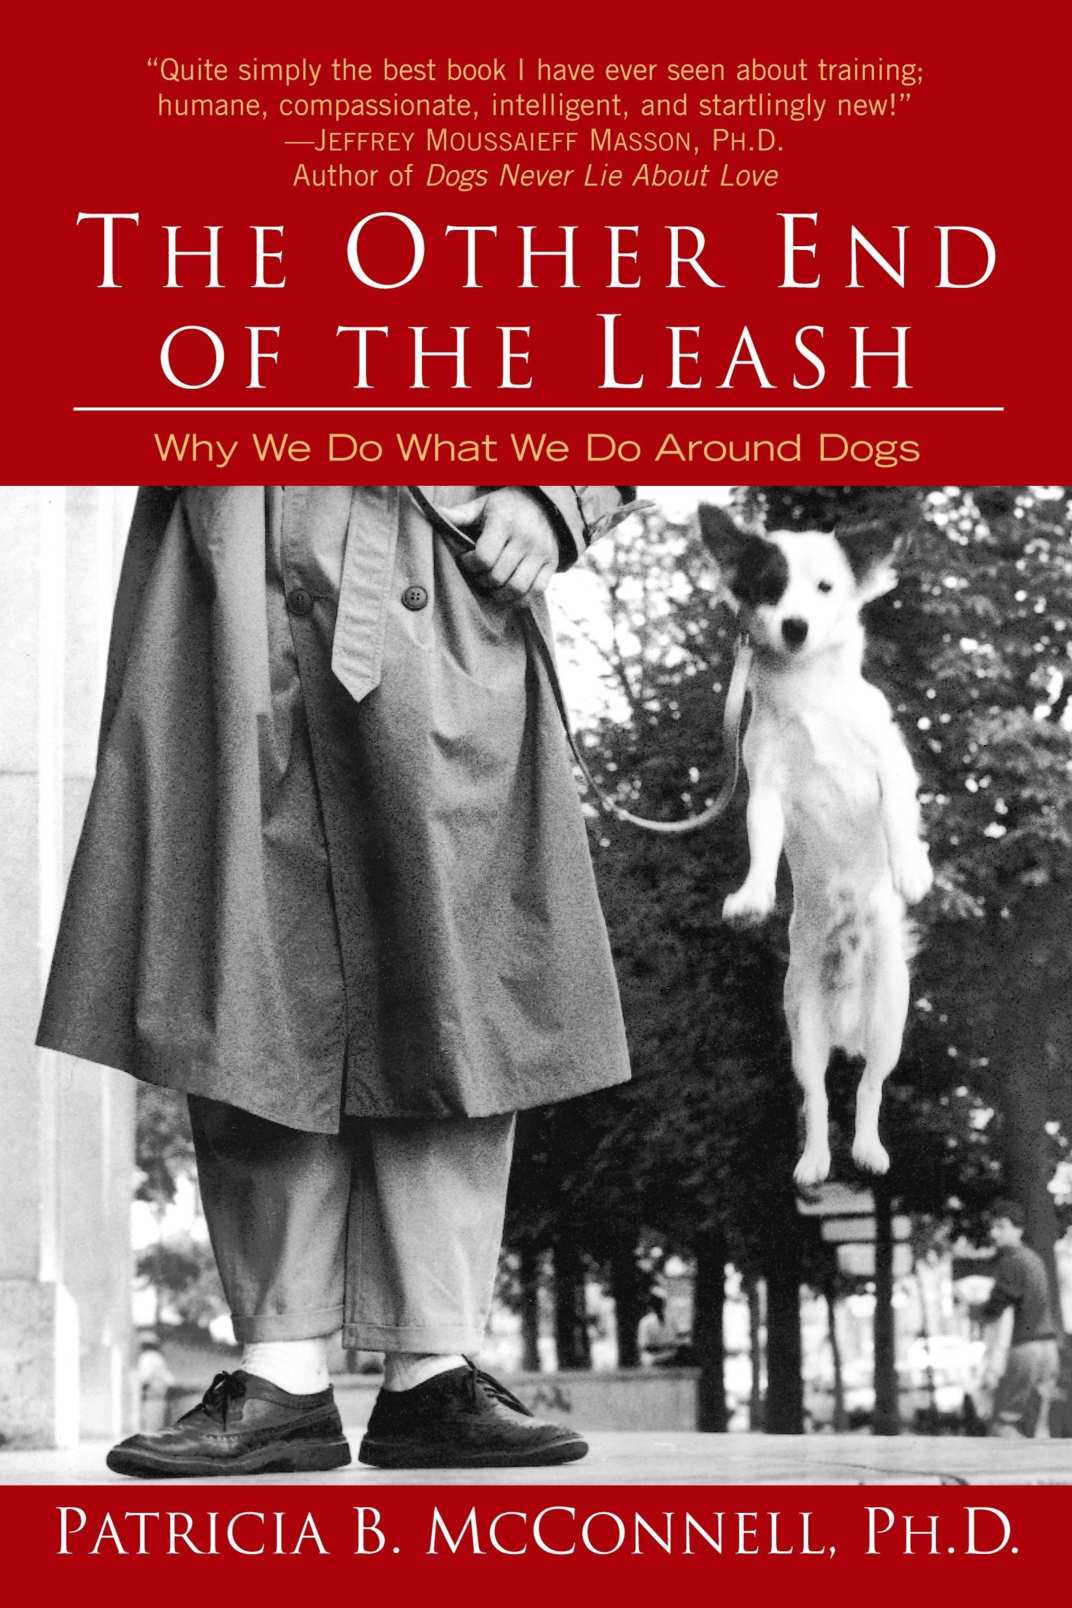 <em>The Other End of the Leash: Why We Do What We Do Around Dogs</em>, by Patricia B. McConnell